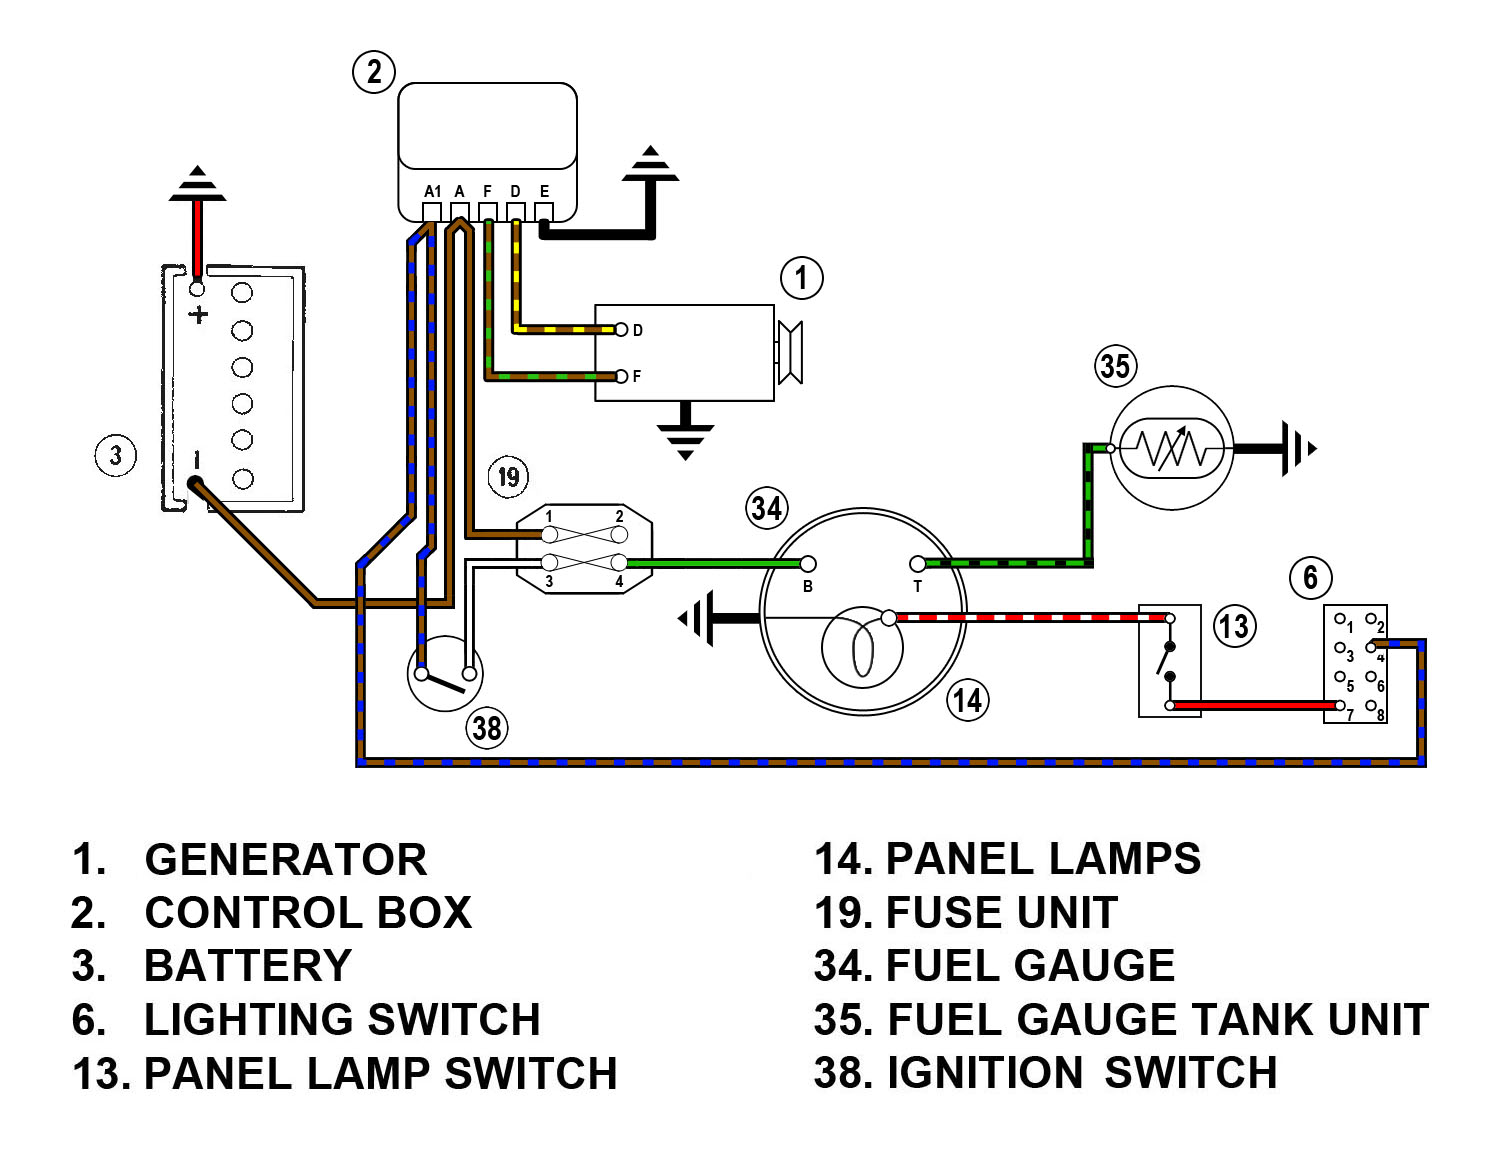 hight resolution of spridgetguru com tech index fuel gauge wiring diagram rh spridgetguru com 1959 austin healey sprite wiring diagram austin healey 3000